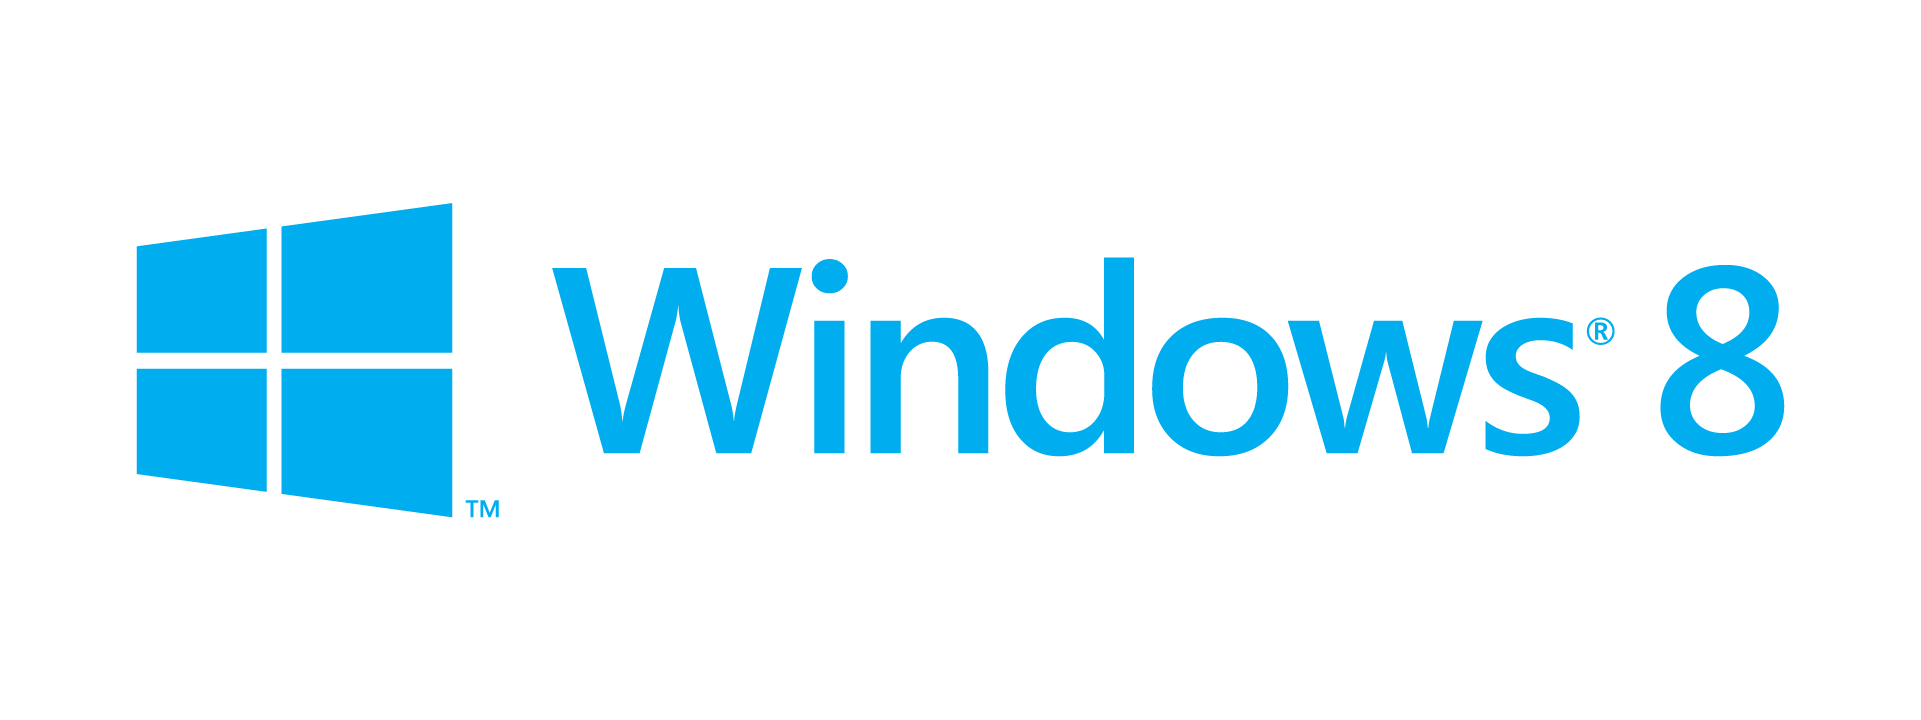 Official logo of windows 8 by ockre on deviantart for Windows official